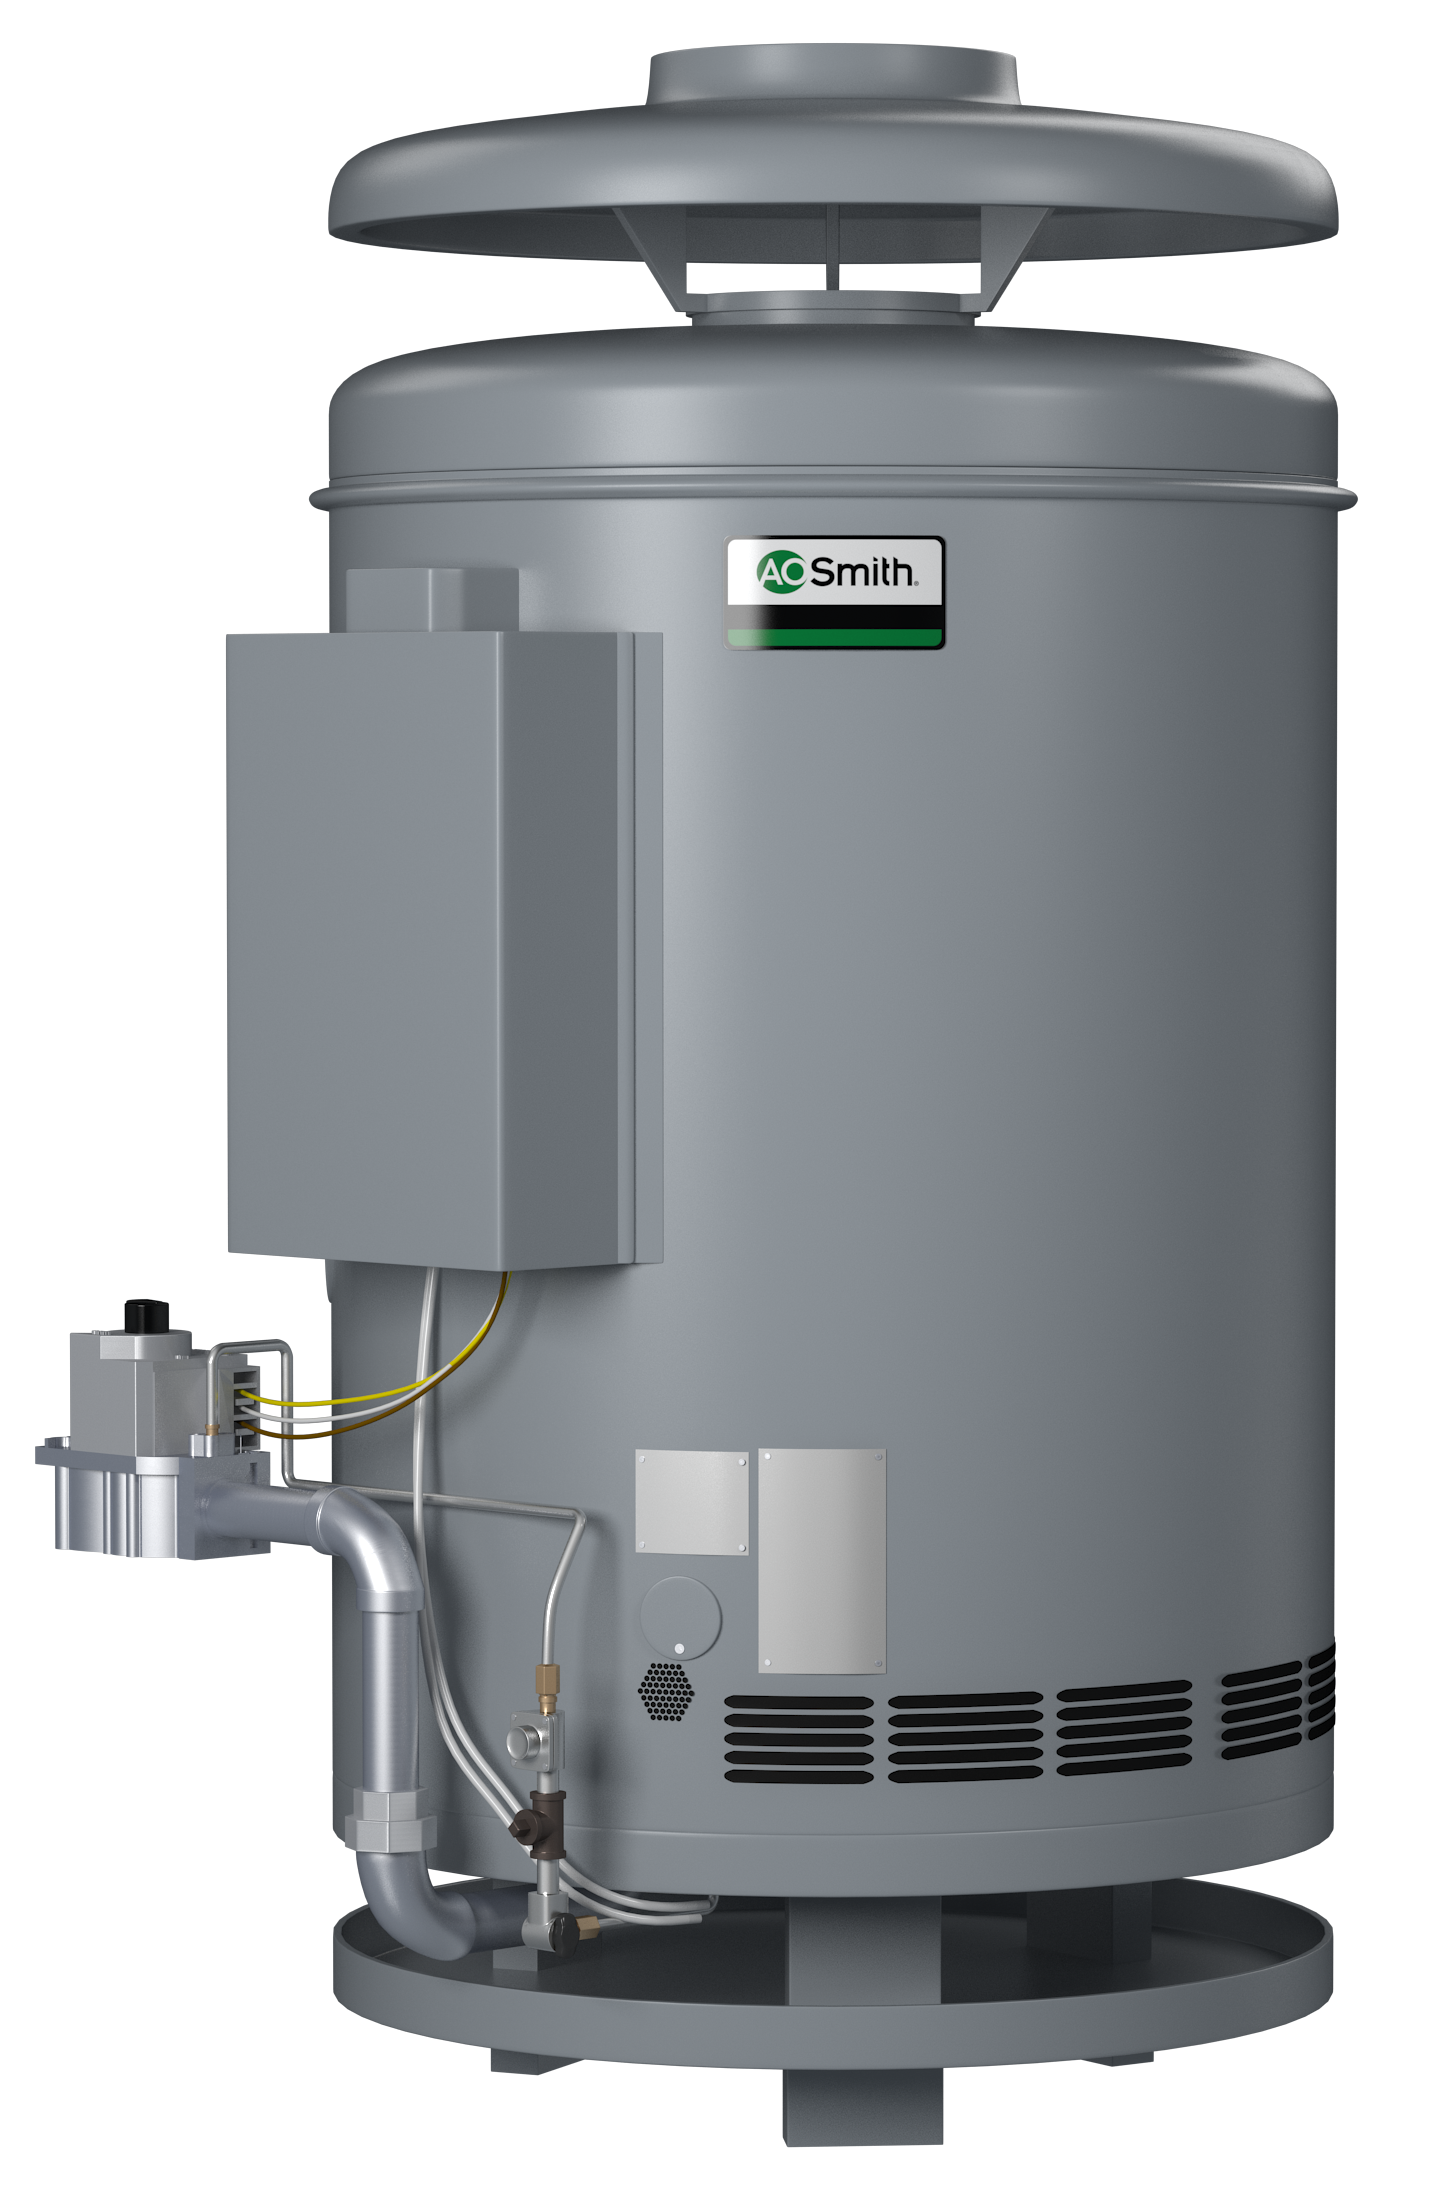 Conservationist burkay circulating water heater water heaters hi res images pooptronica Choice Image